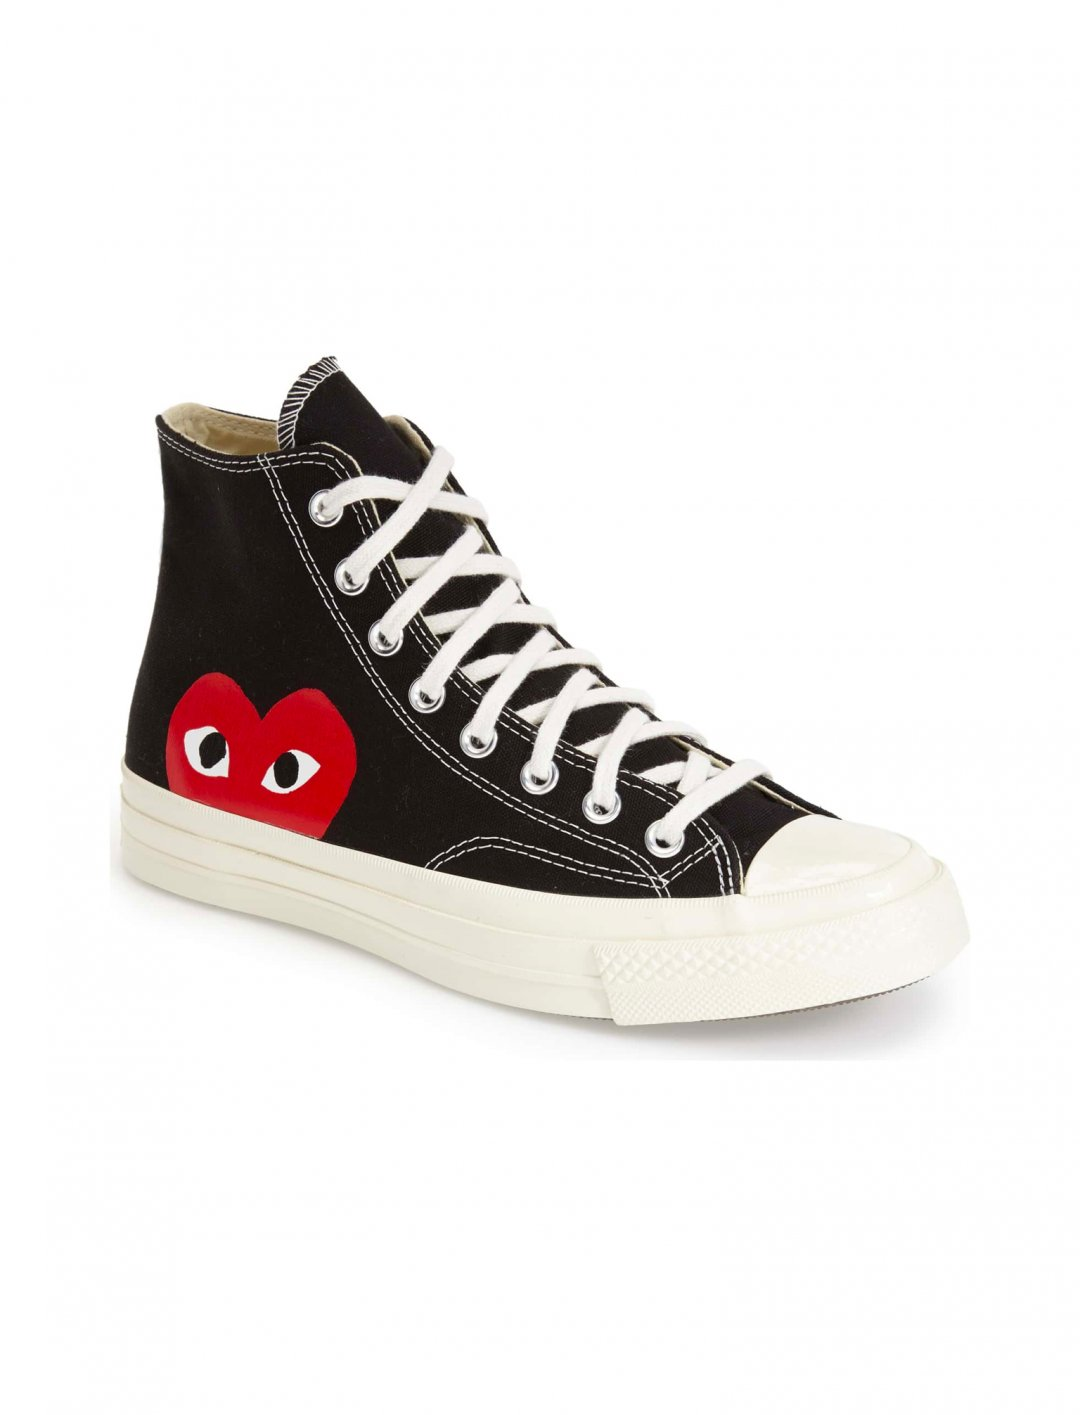 "High Top Sneakers {""id"":12,""product_section_id"":1,""name"":""Shoes"",""order"":12} Comme des Garçons x Converse"